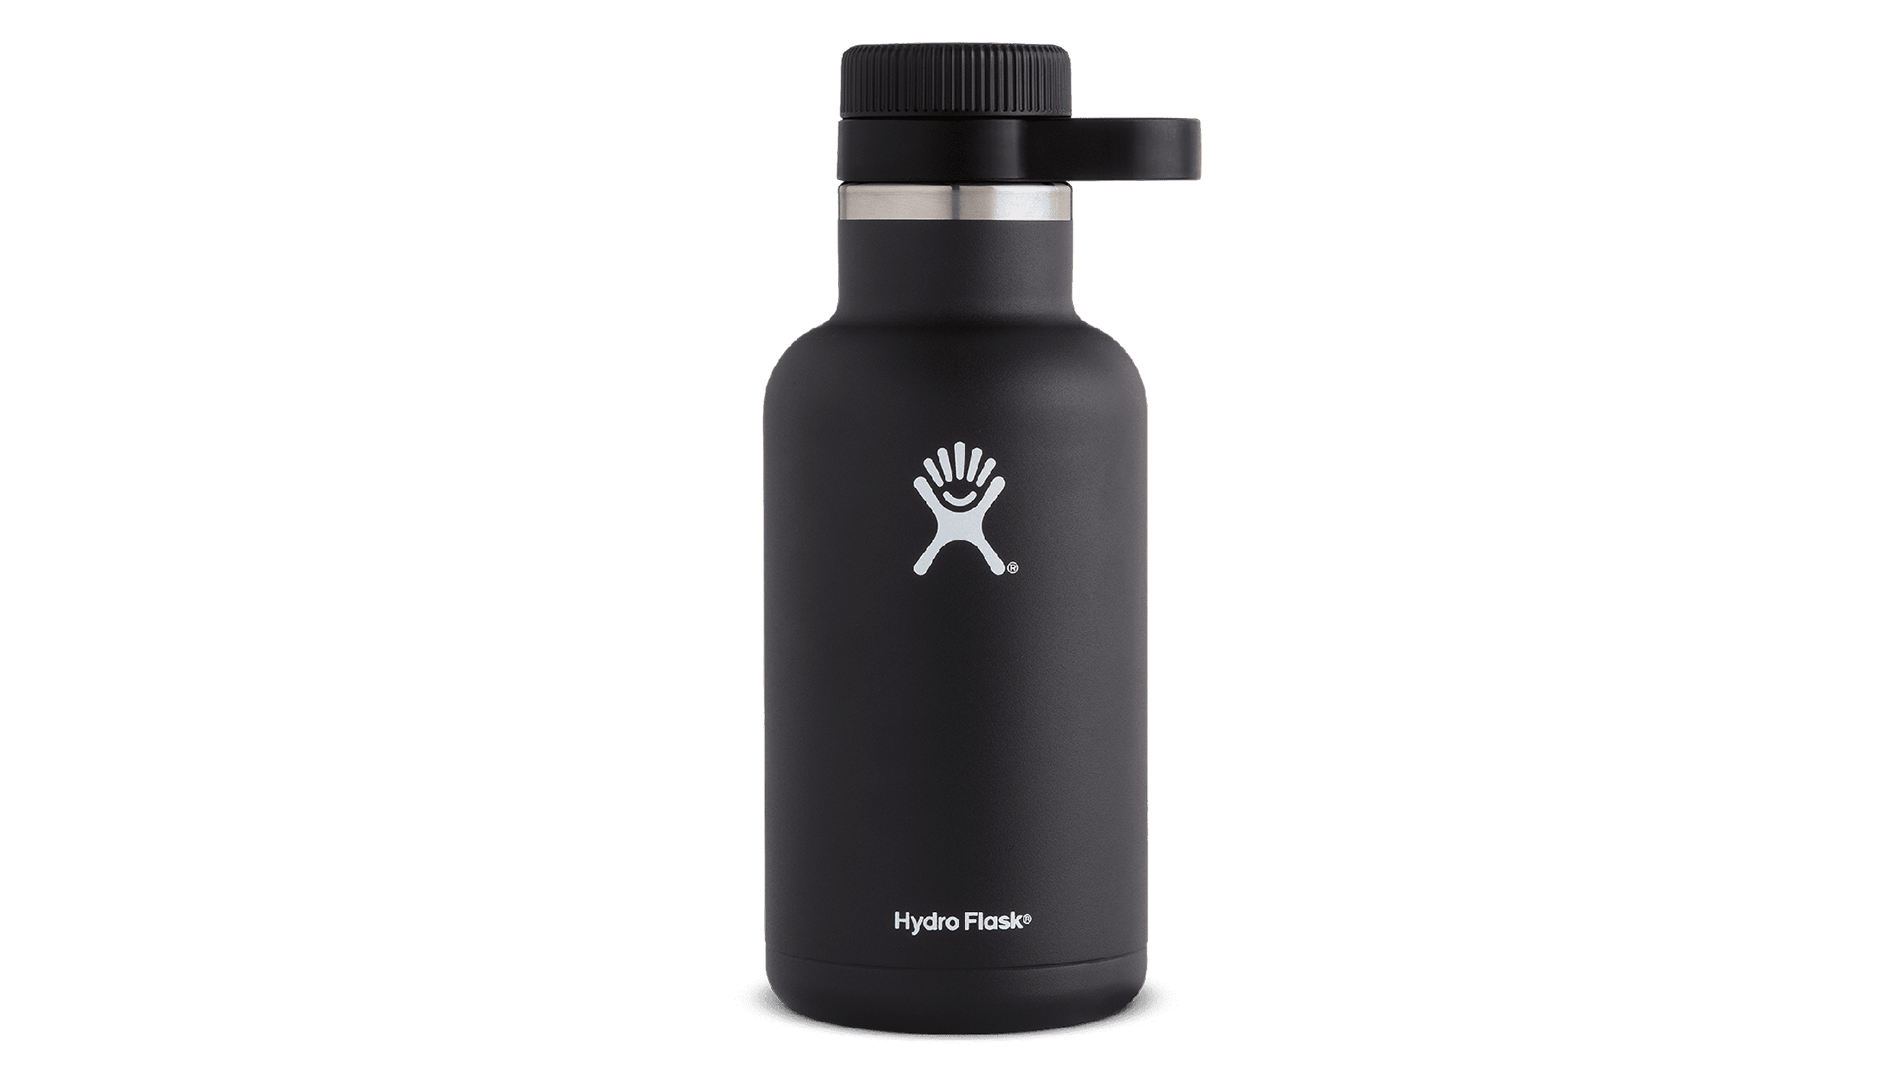 hydroflask beer growler